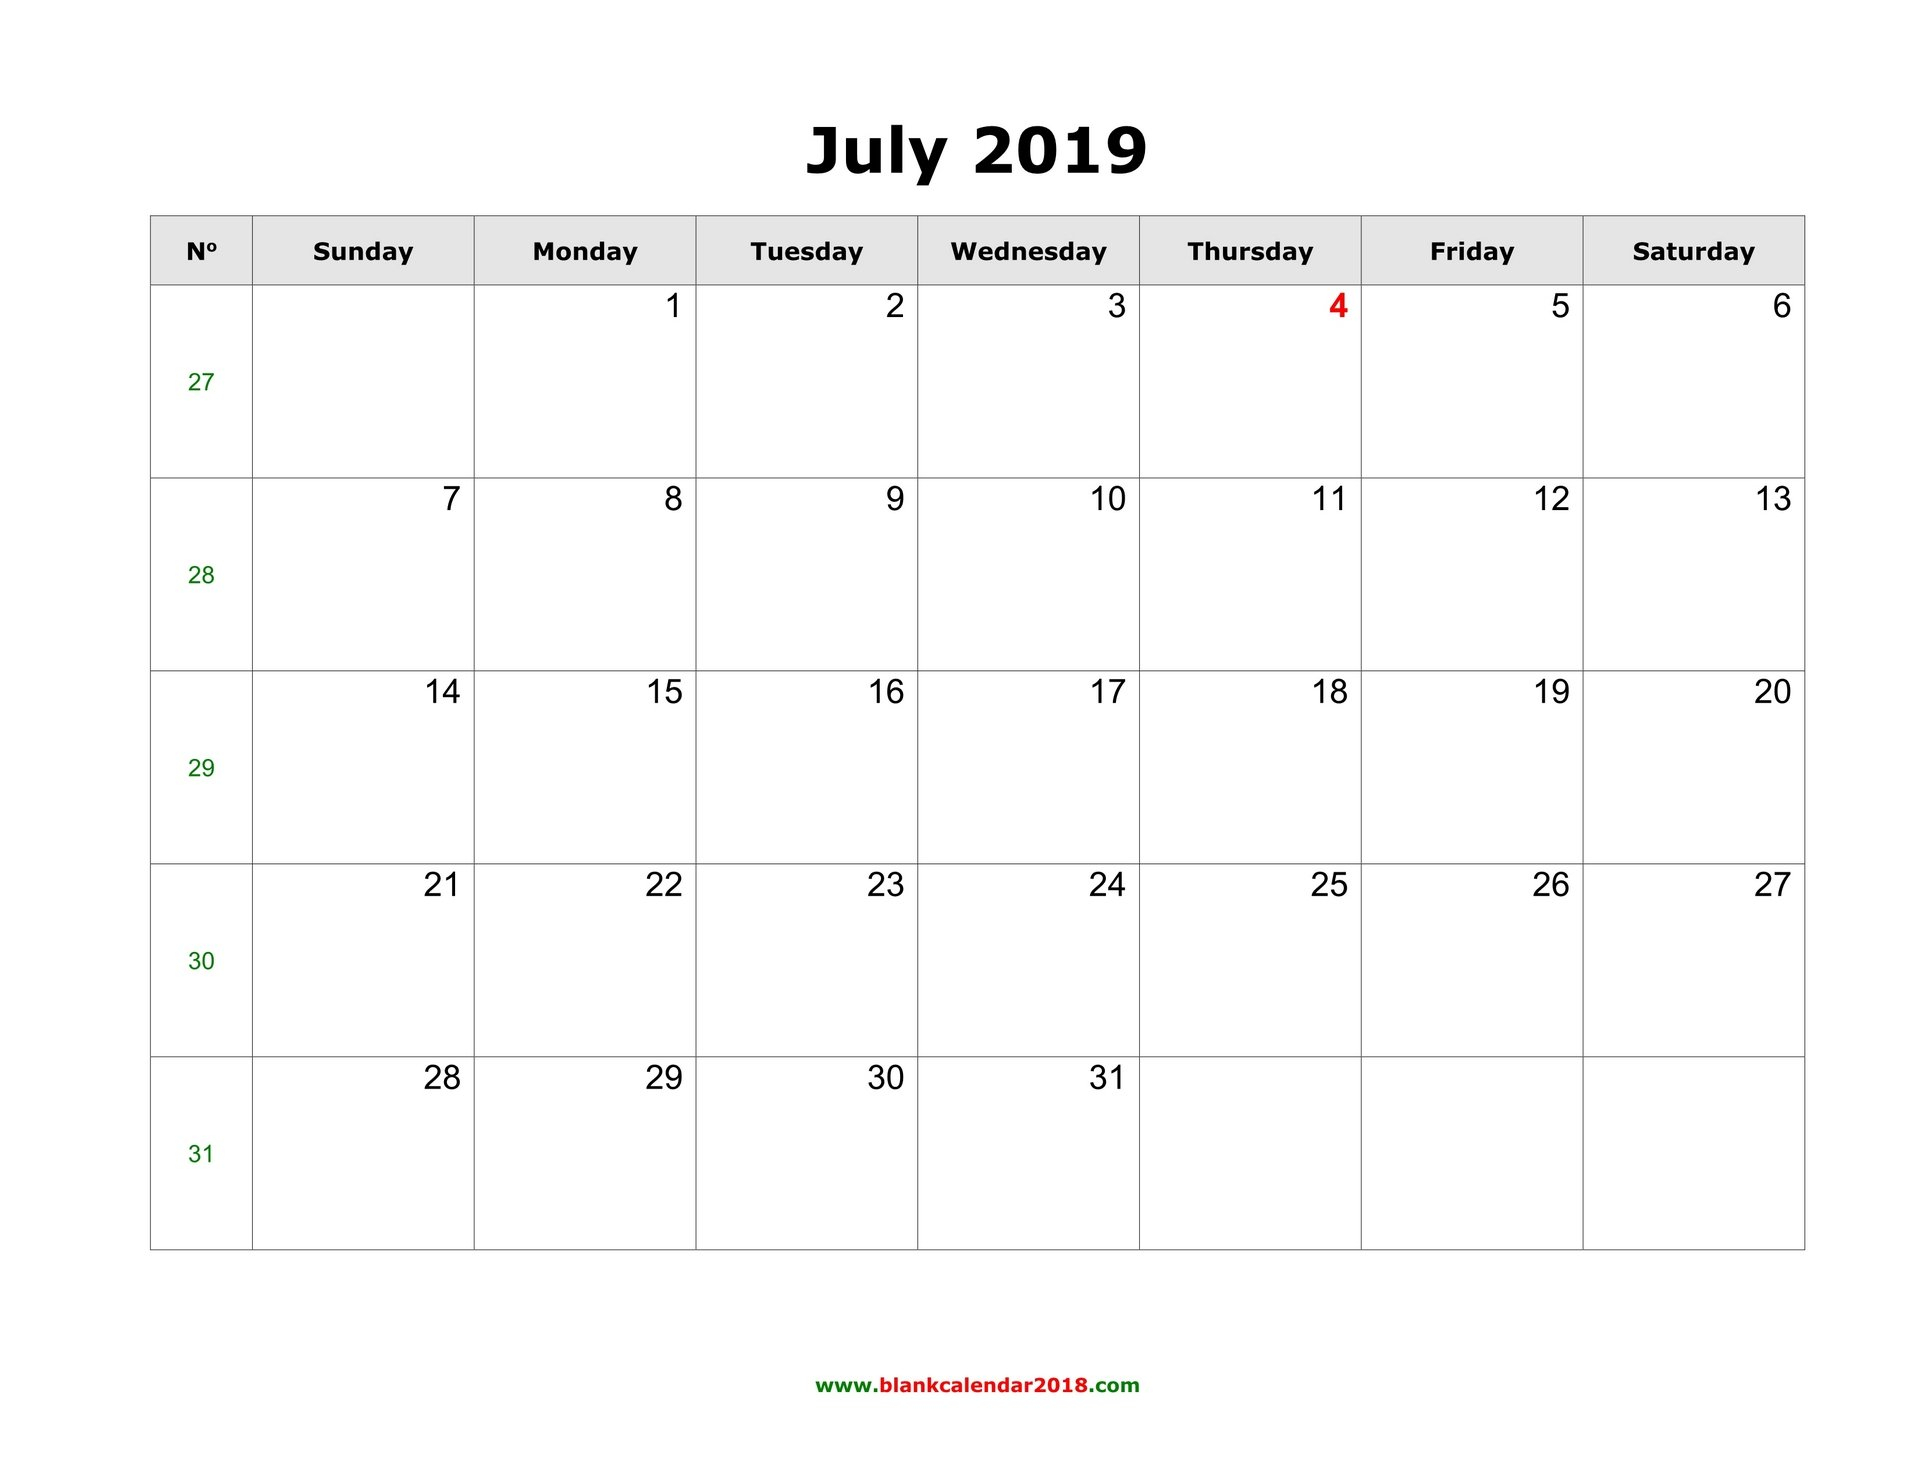 Blank Calendar For July 2019 Calendar 2019 Editable